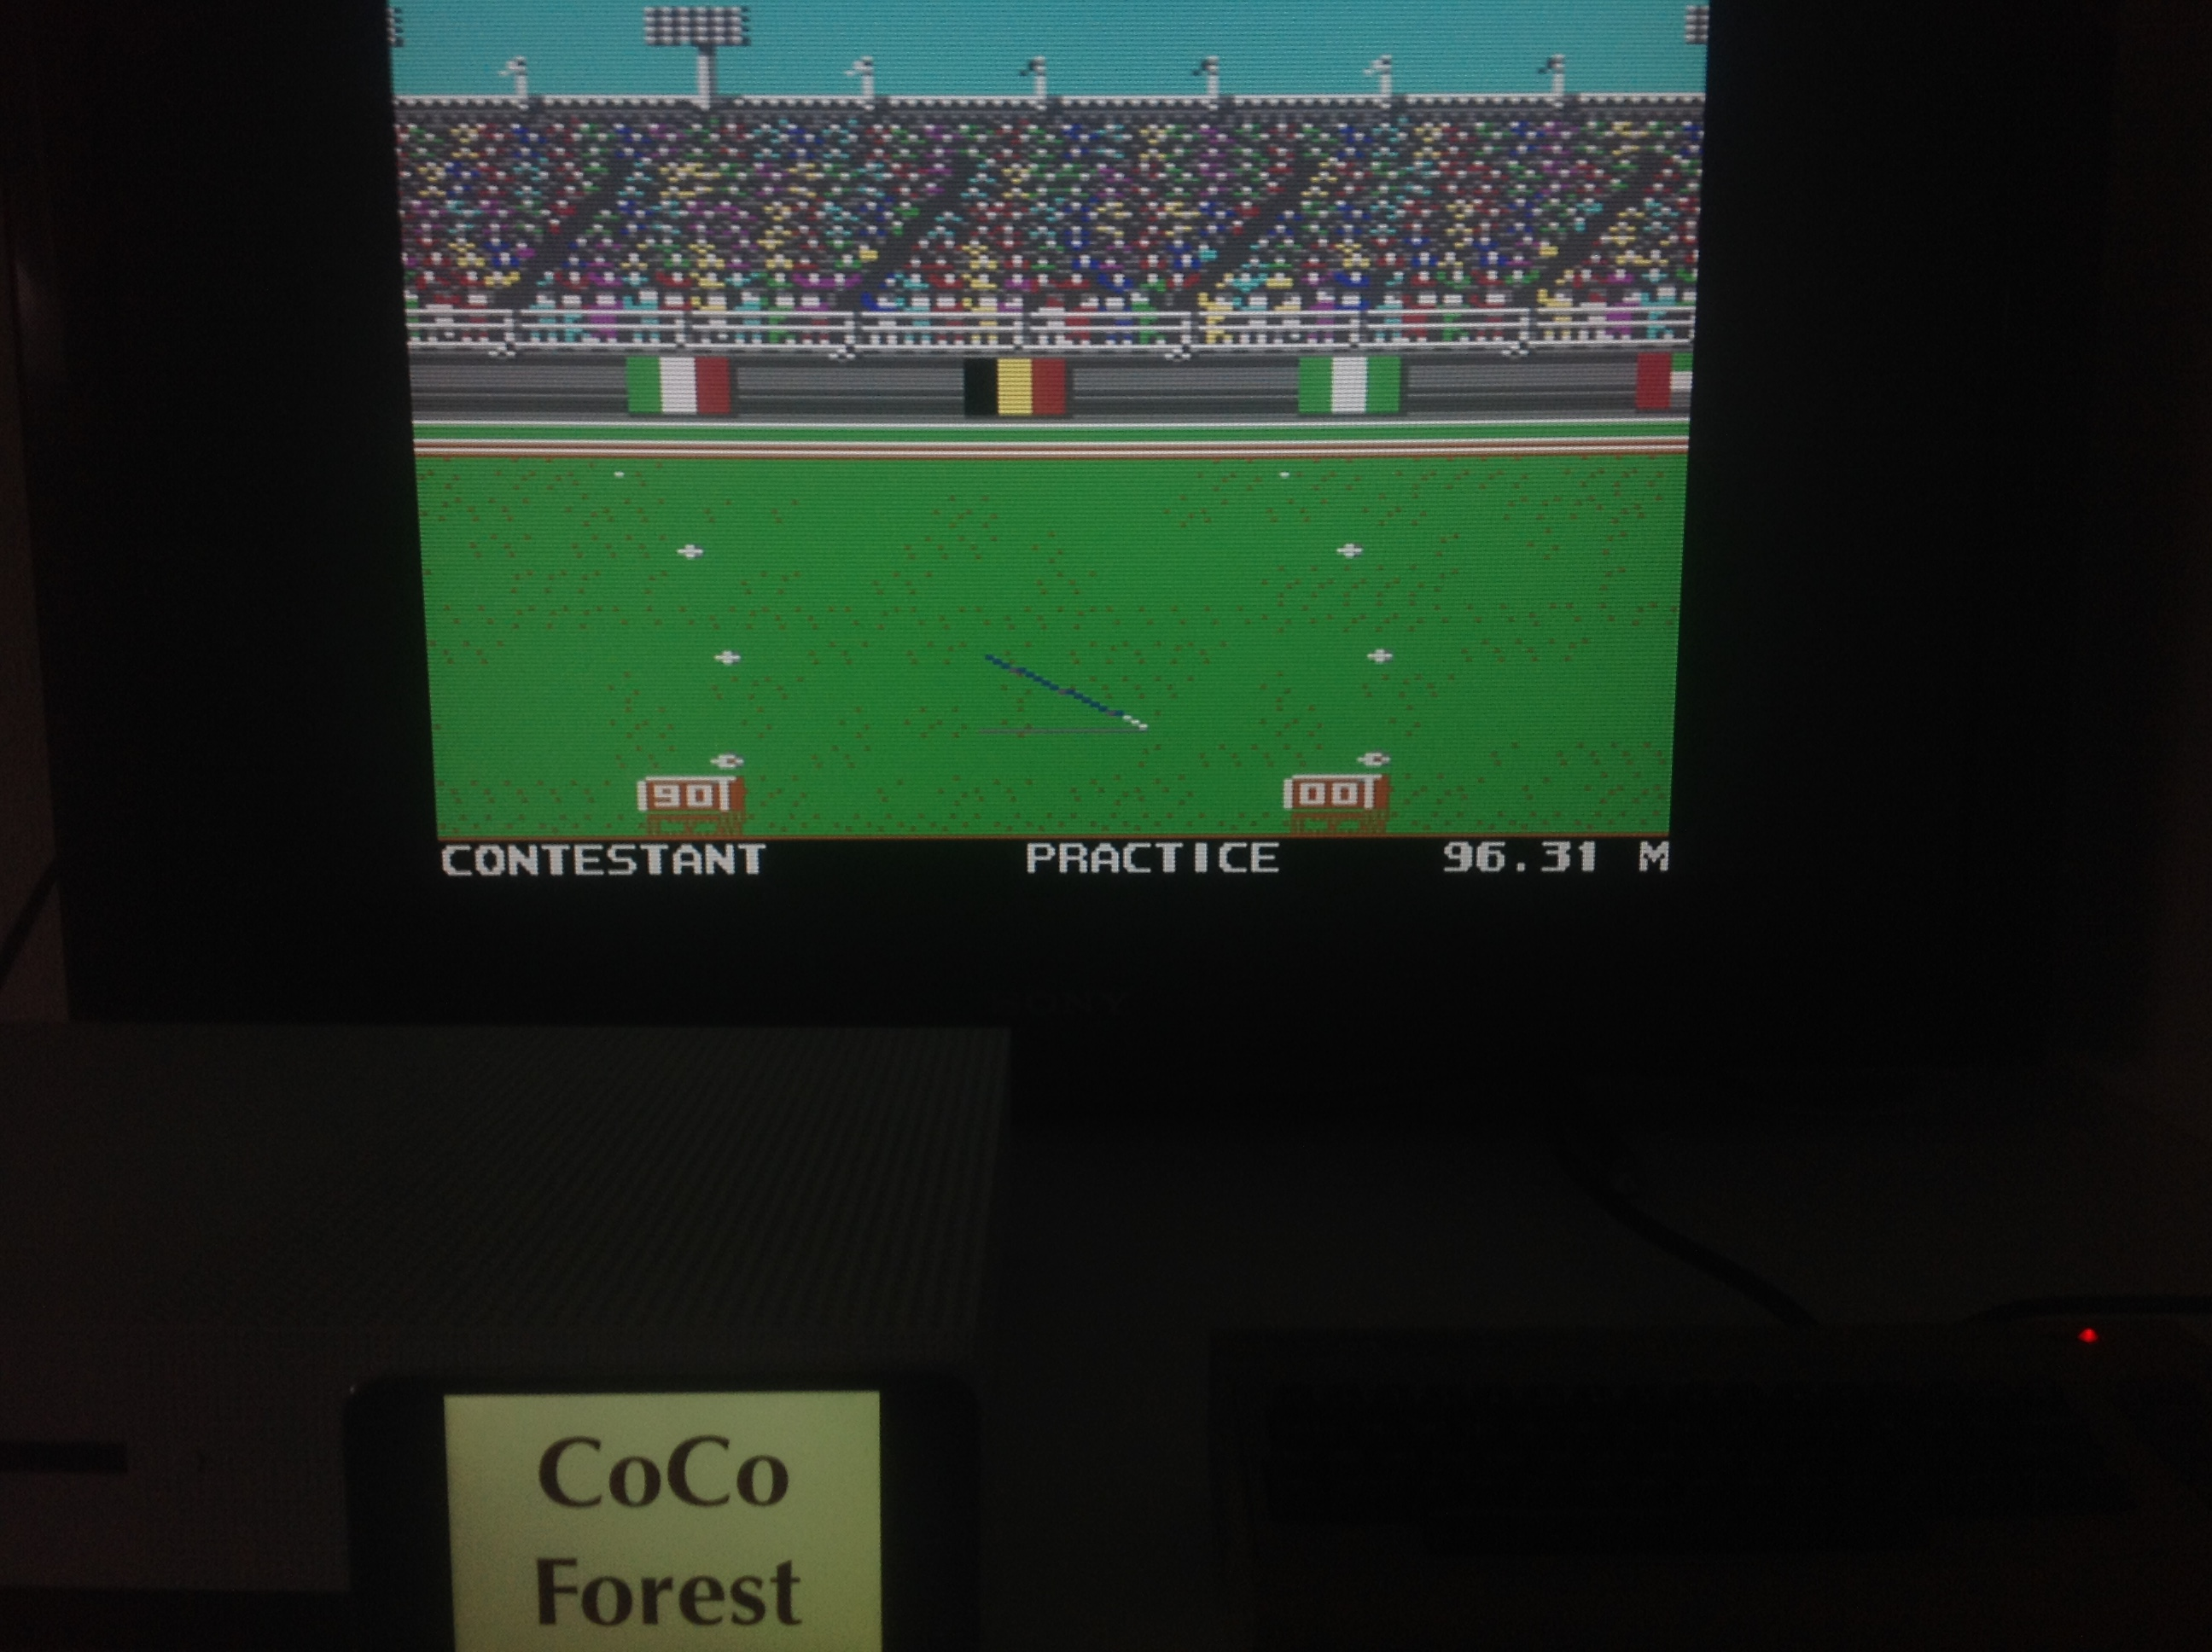 CoCoForest: Summer Games 2: Javelin Throw [Centimeters] (Commodore 64 Emulated) 9,631 points on 2018-04-10 11:55:28